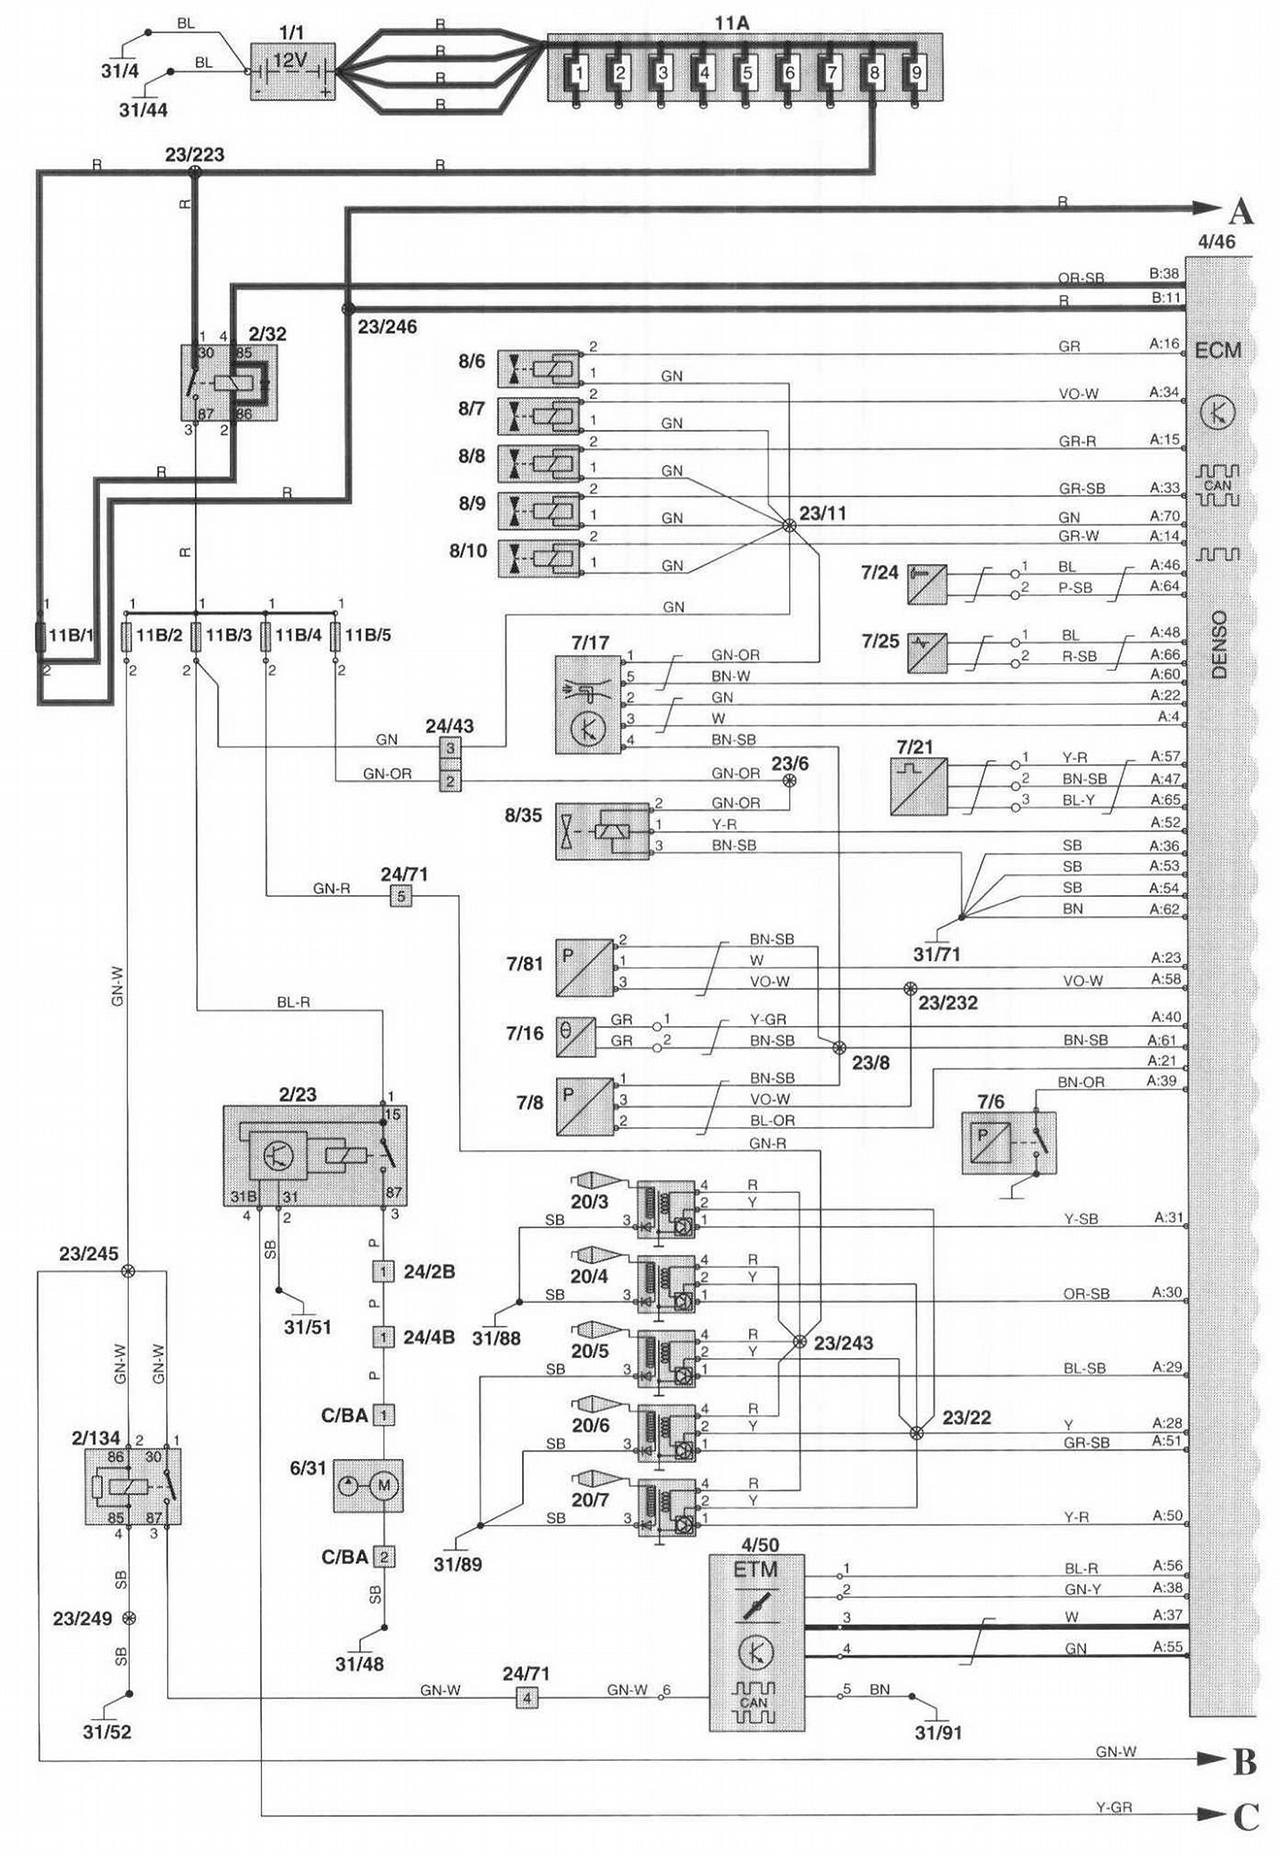 Volvo V70 Fuse Diagram